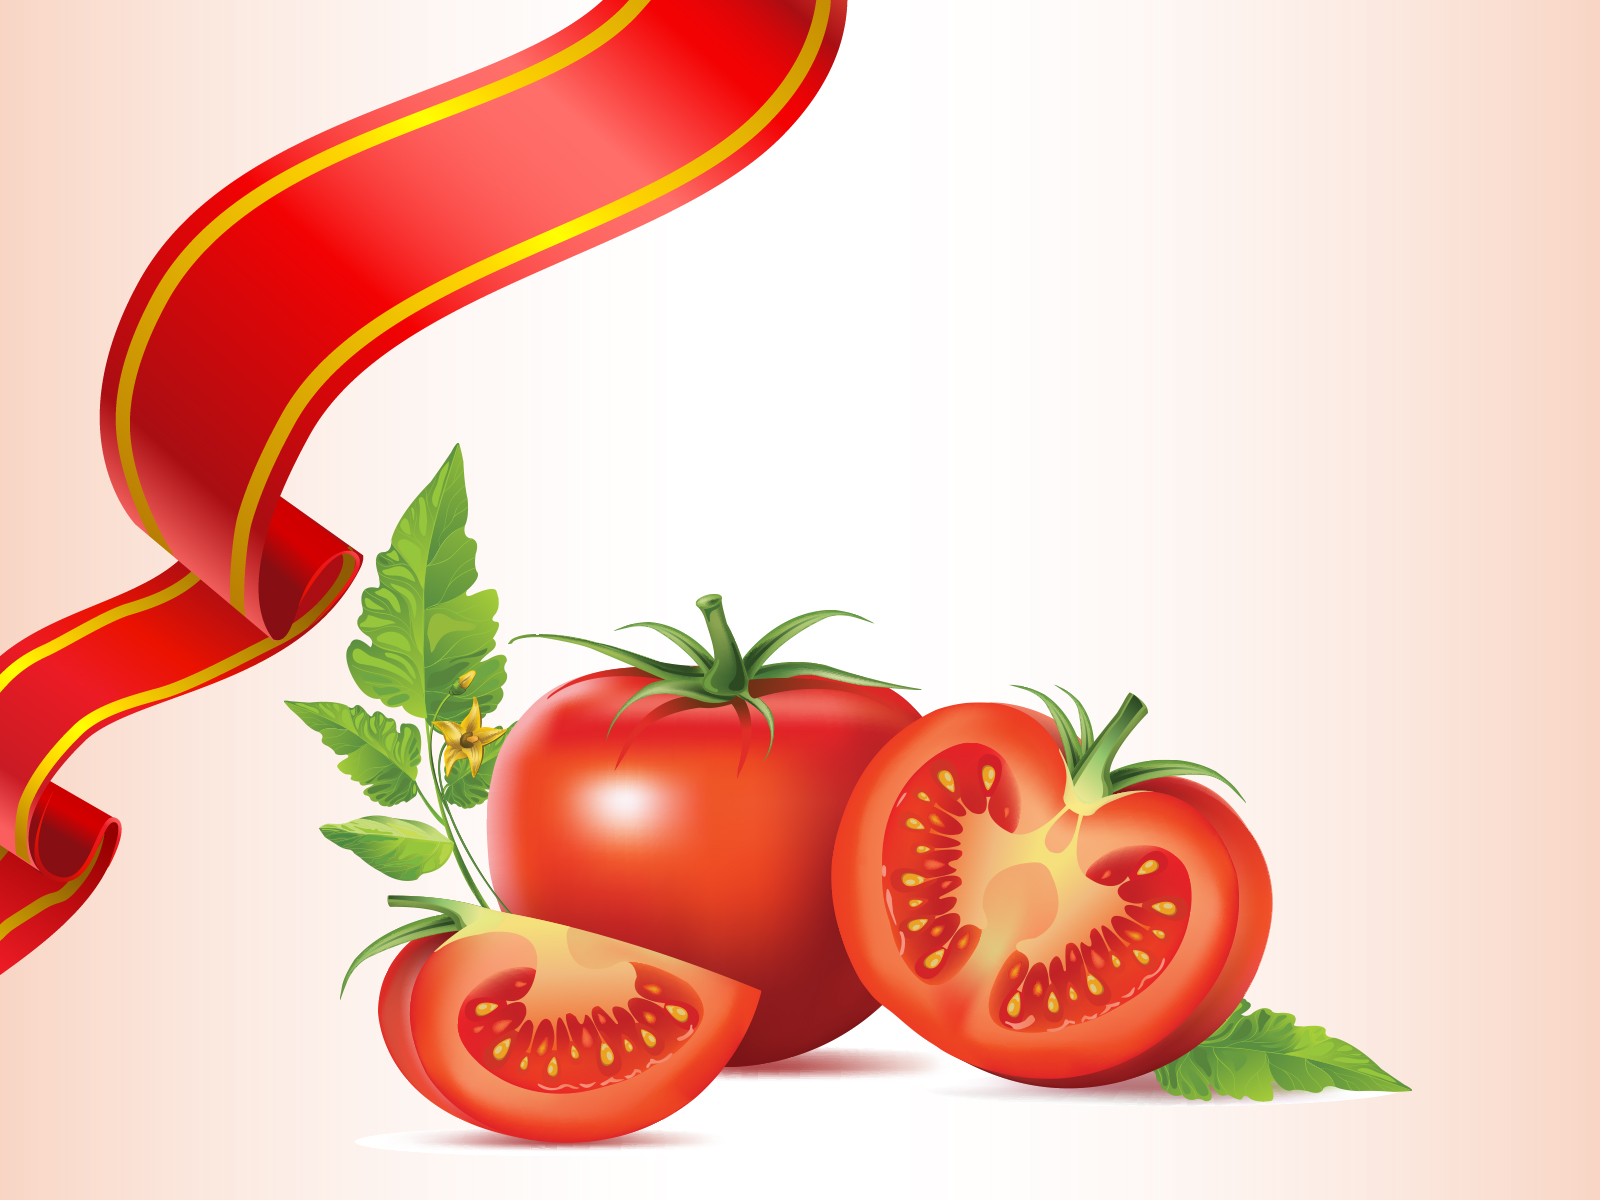 Natural Healthy Food Tomato Backgrounds